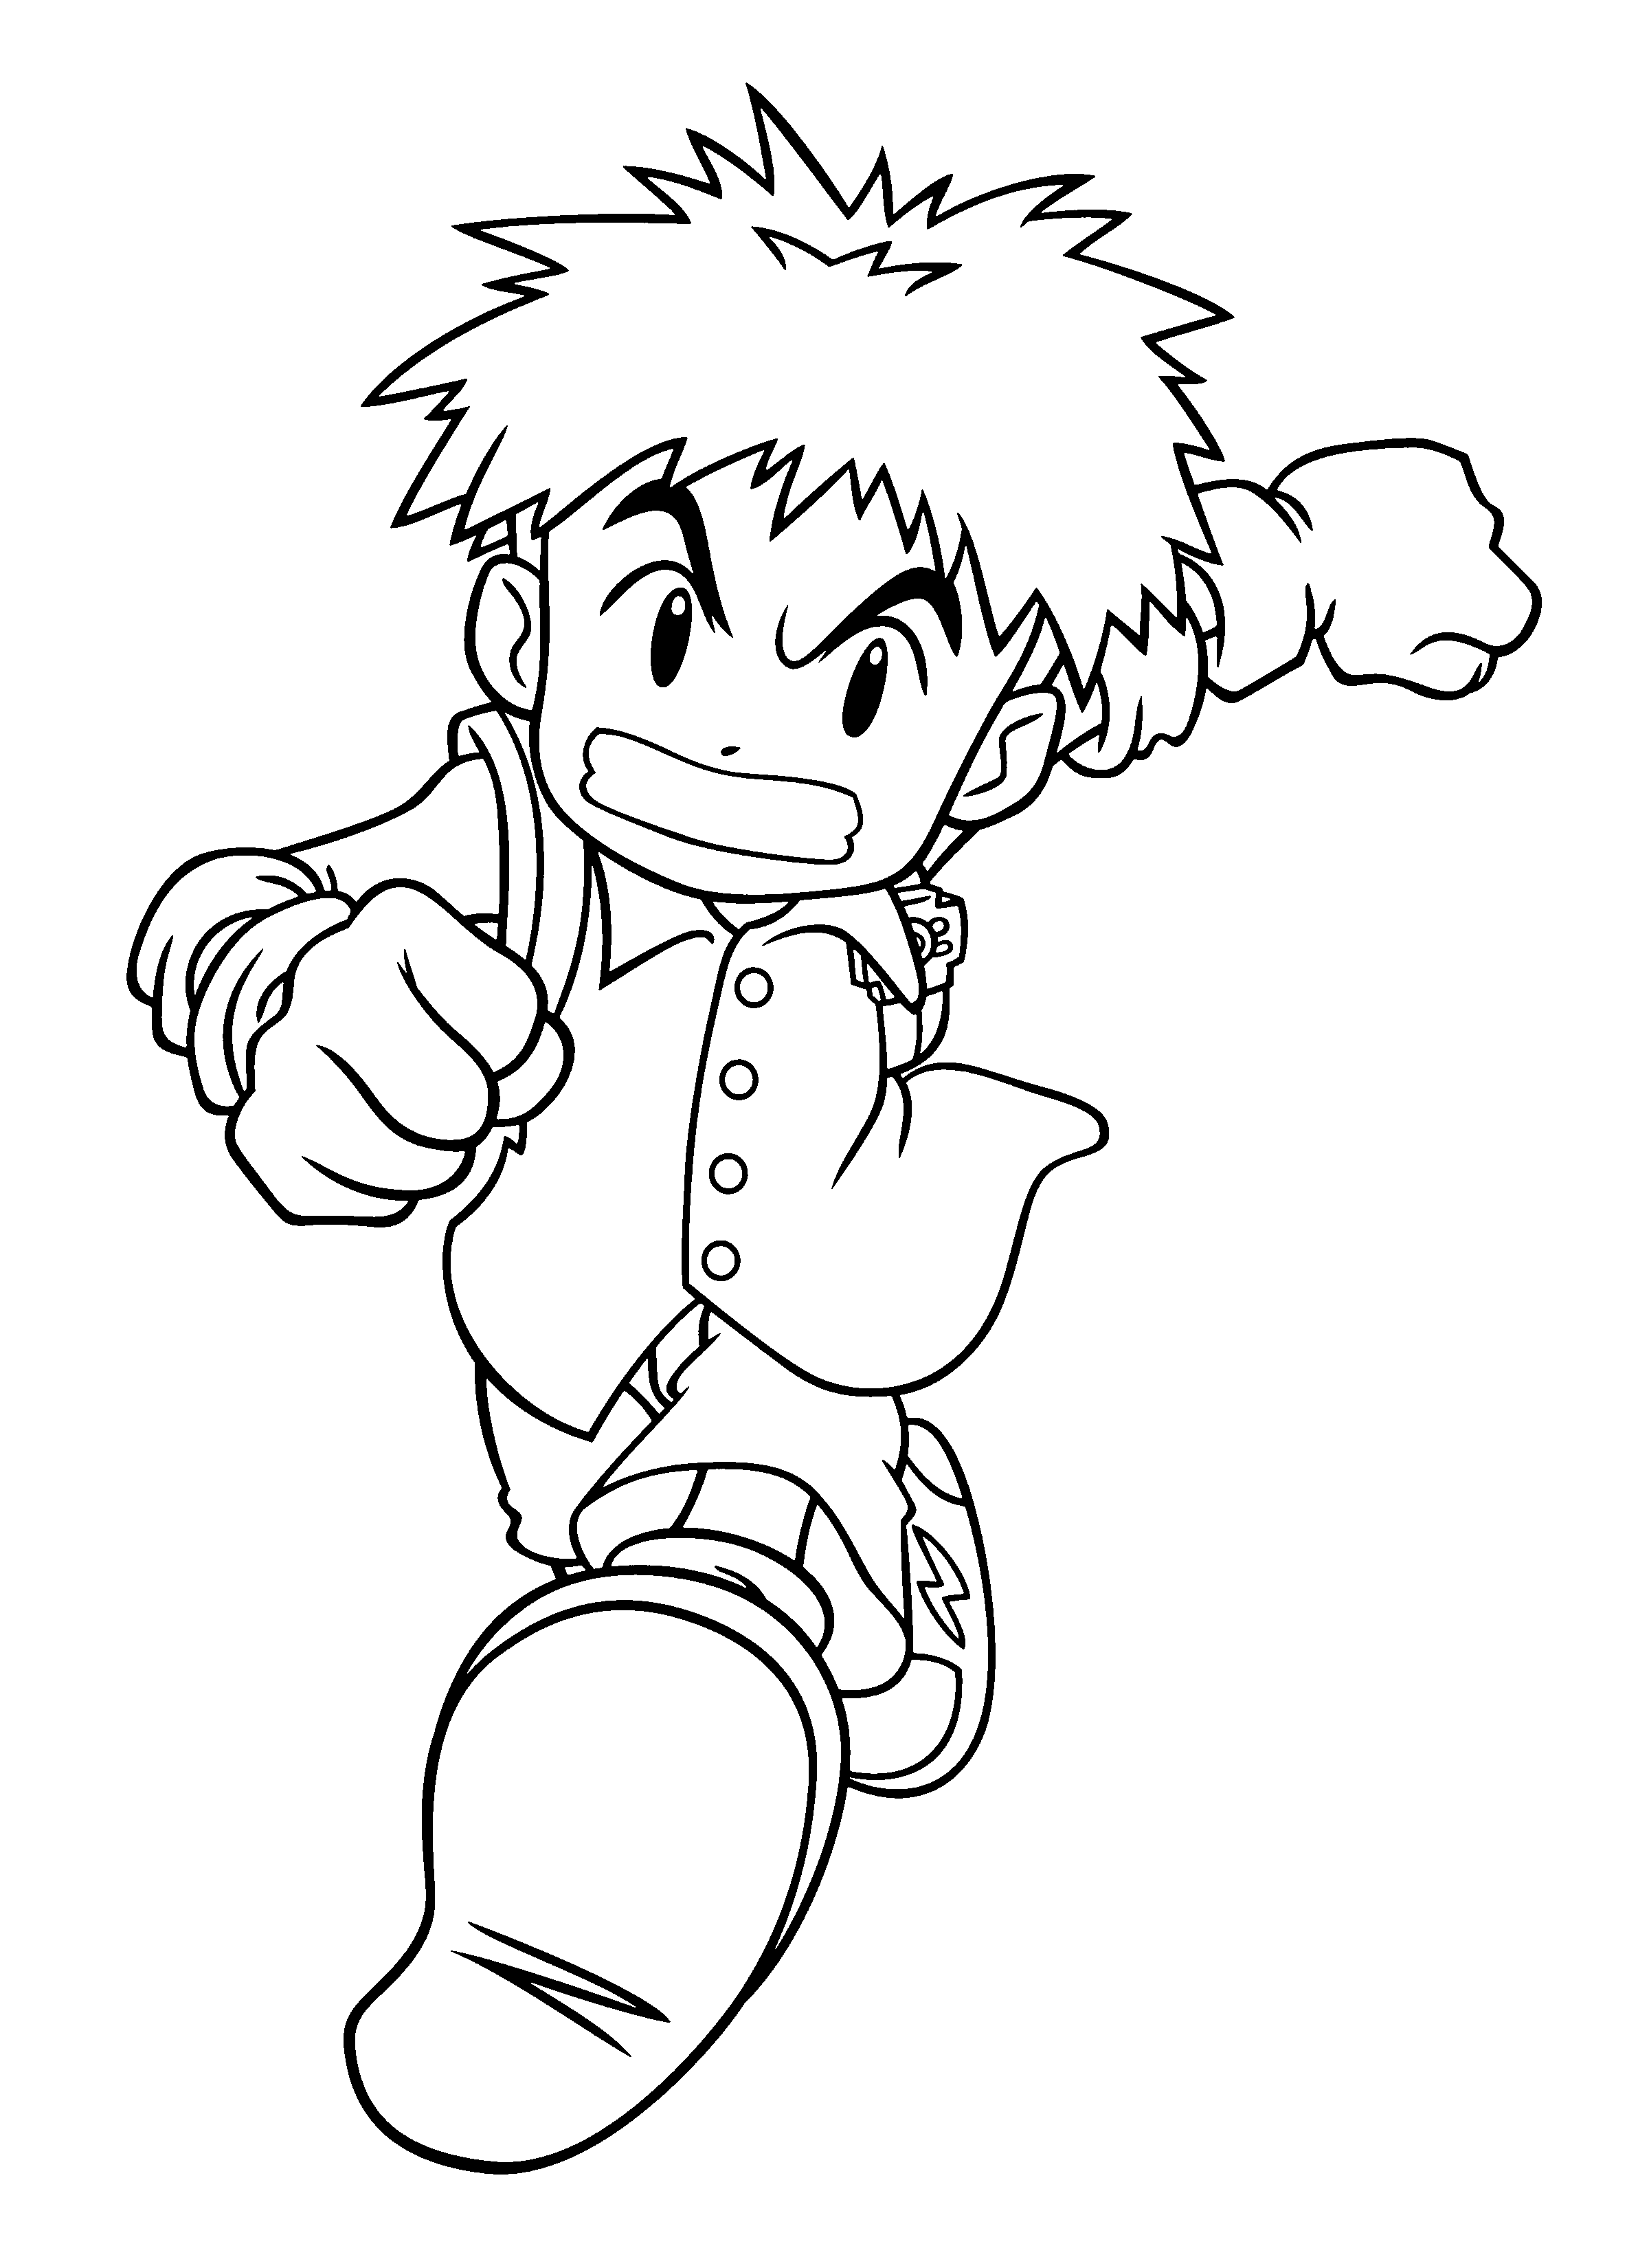 new digimon coloring pages - photo#13